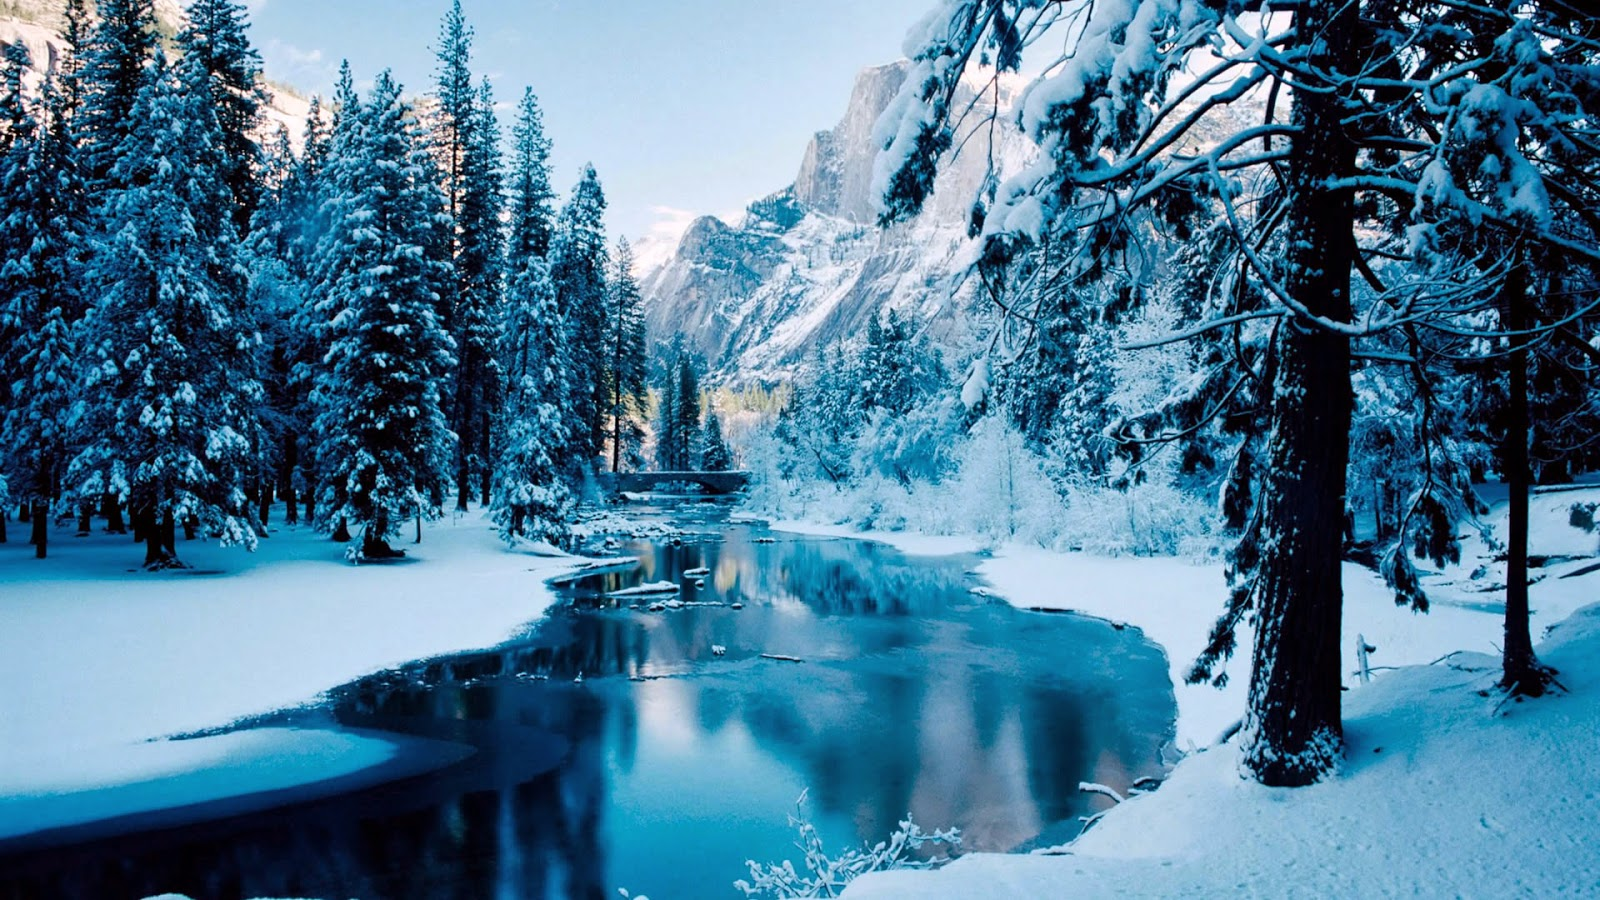 blue-winter-beautiful-forest-ice-mountain-river-nature-images-wallpaper